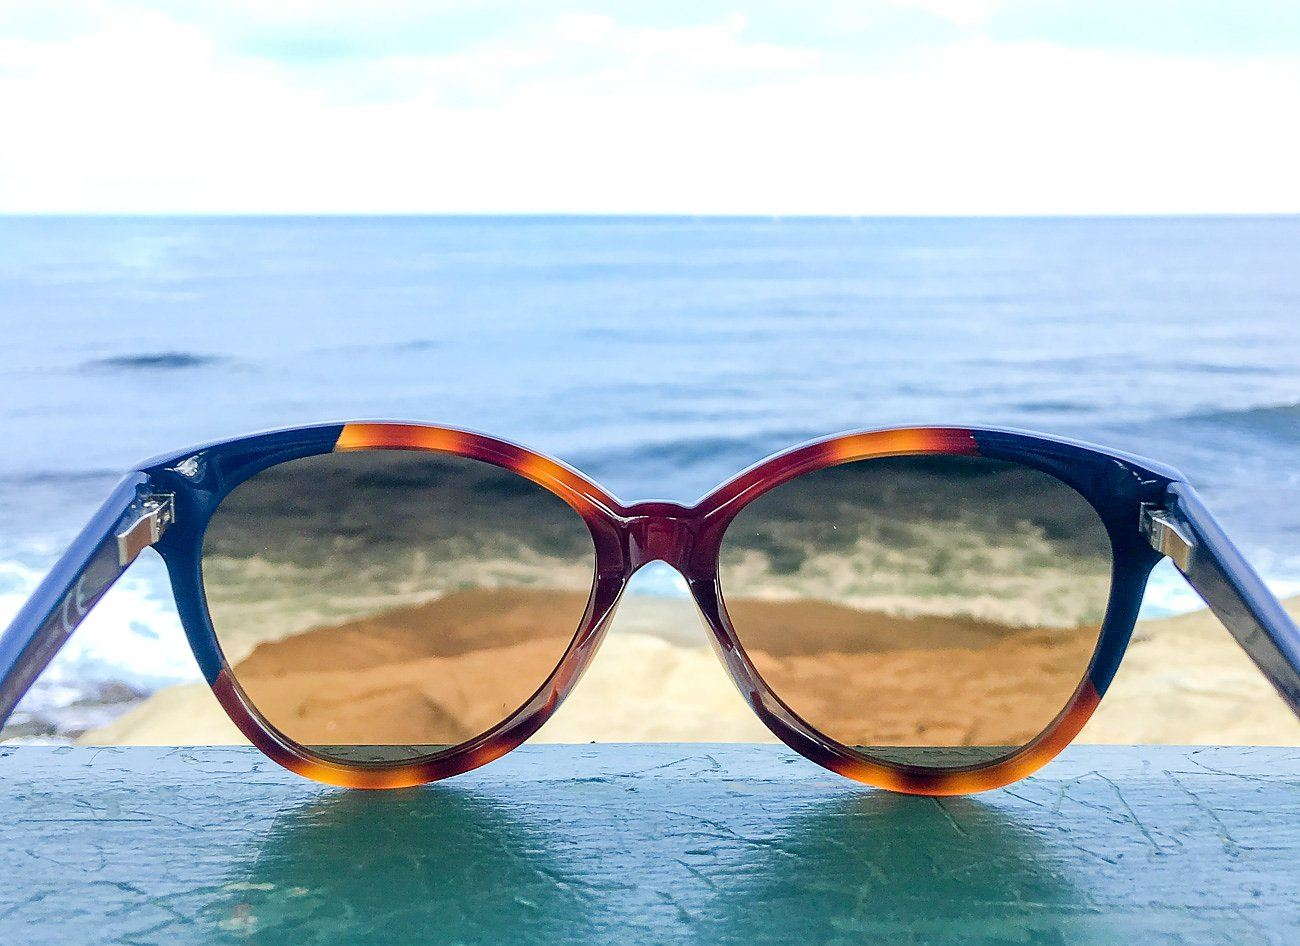 4c5cef375cb5 How Maui Jim Really Does Improve Your View - La Jolla Mom